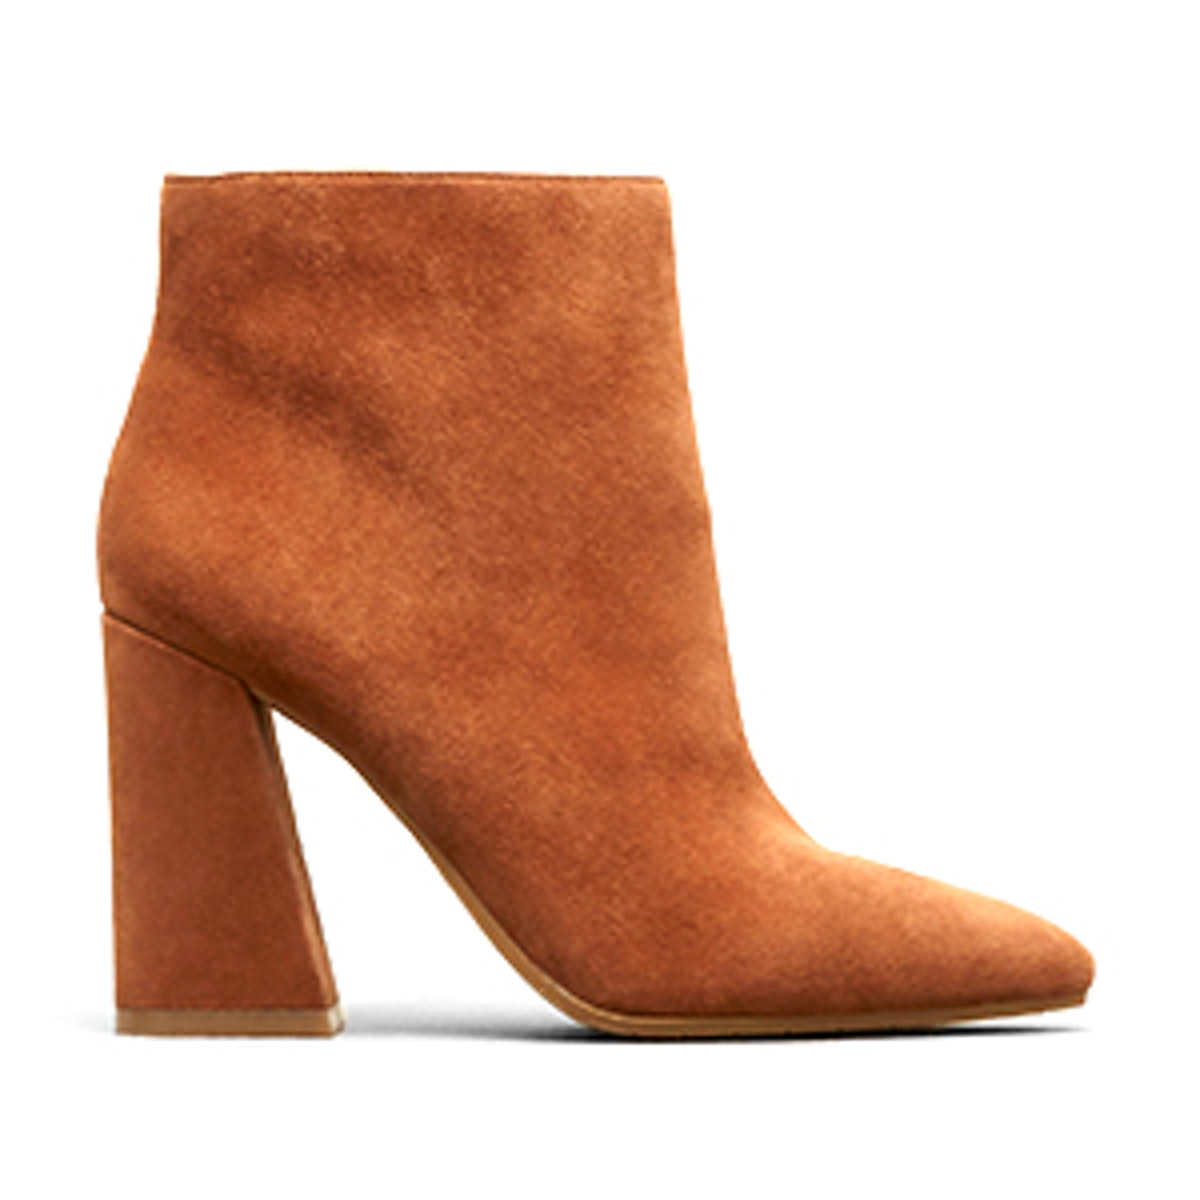 Gladis Suede Ankle Boot